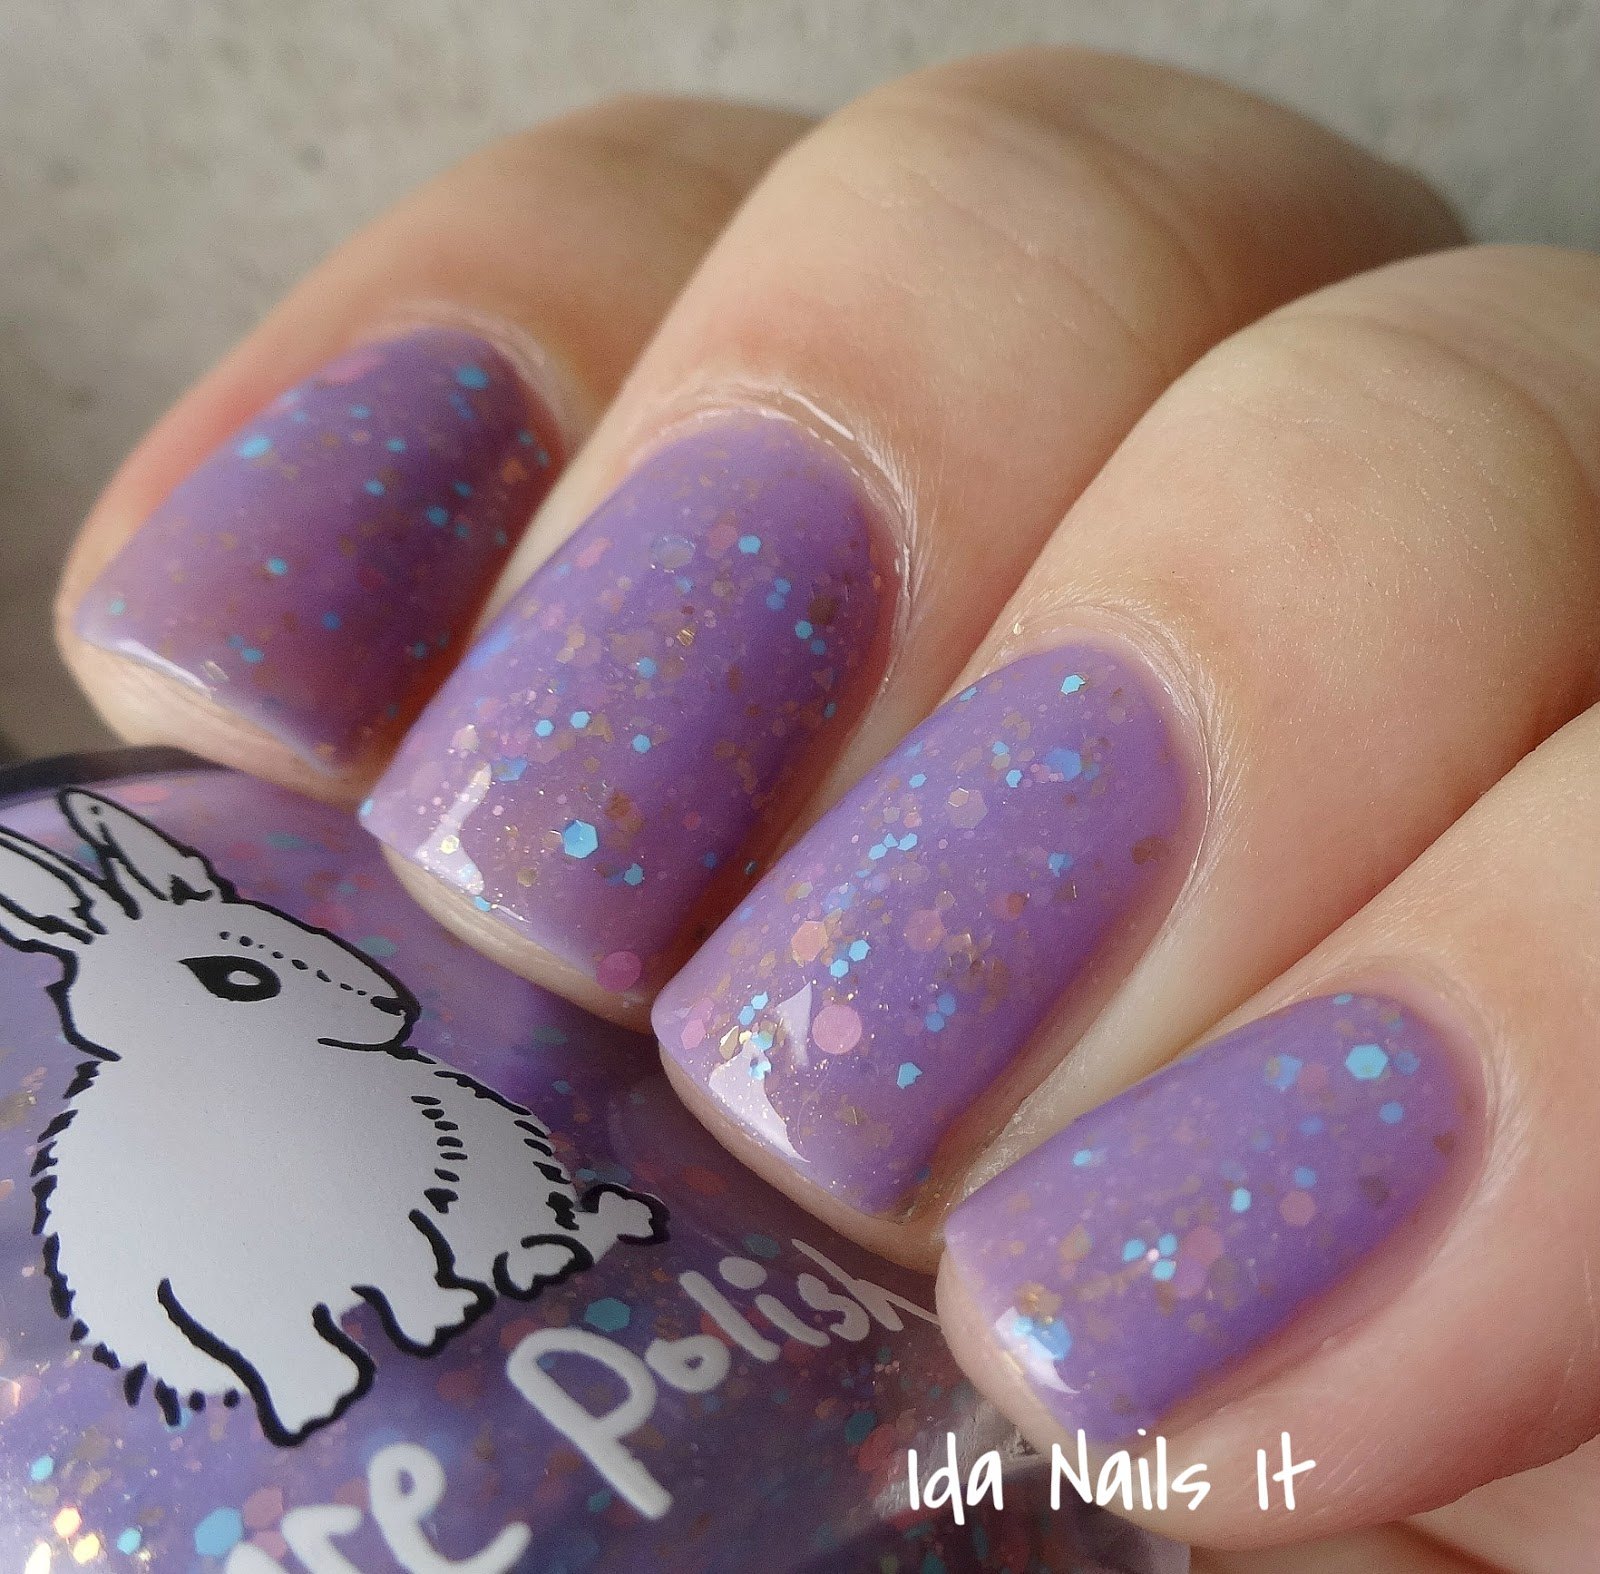 Sation Cotton Candy By Fingernail Polish: Ida Nails It: Hare Polish Cotton Candy Crush From Febuary